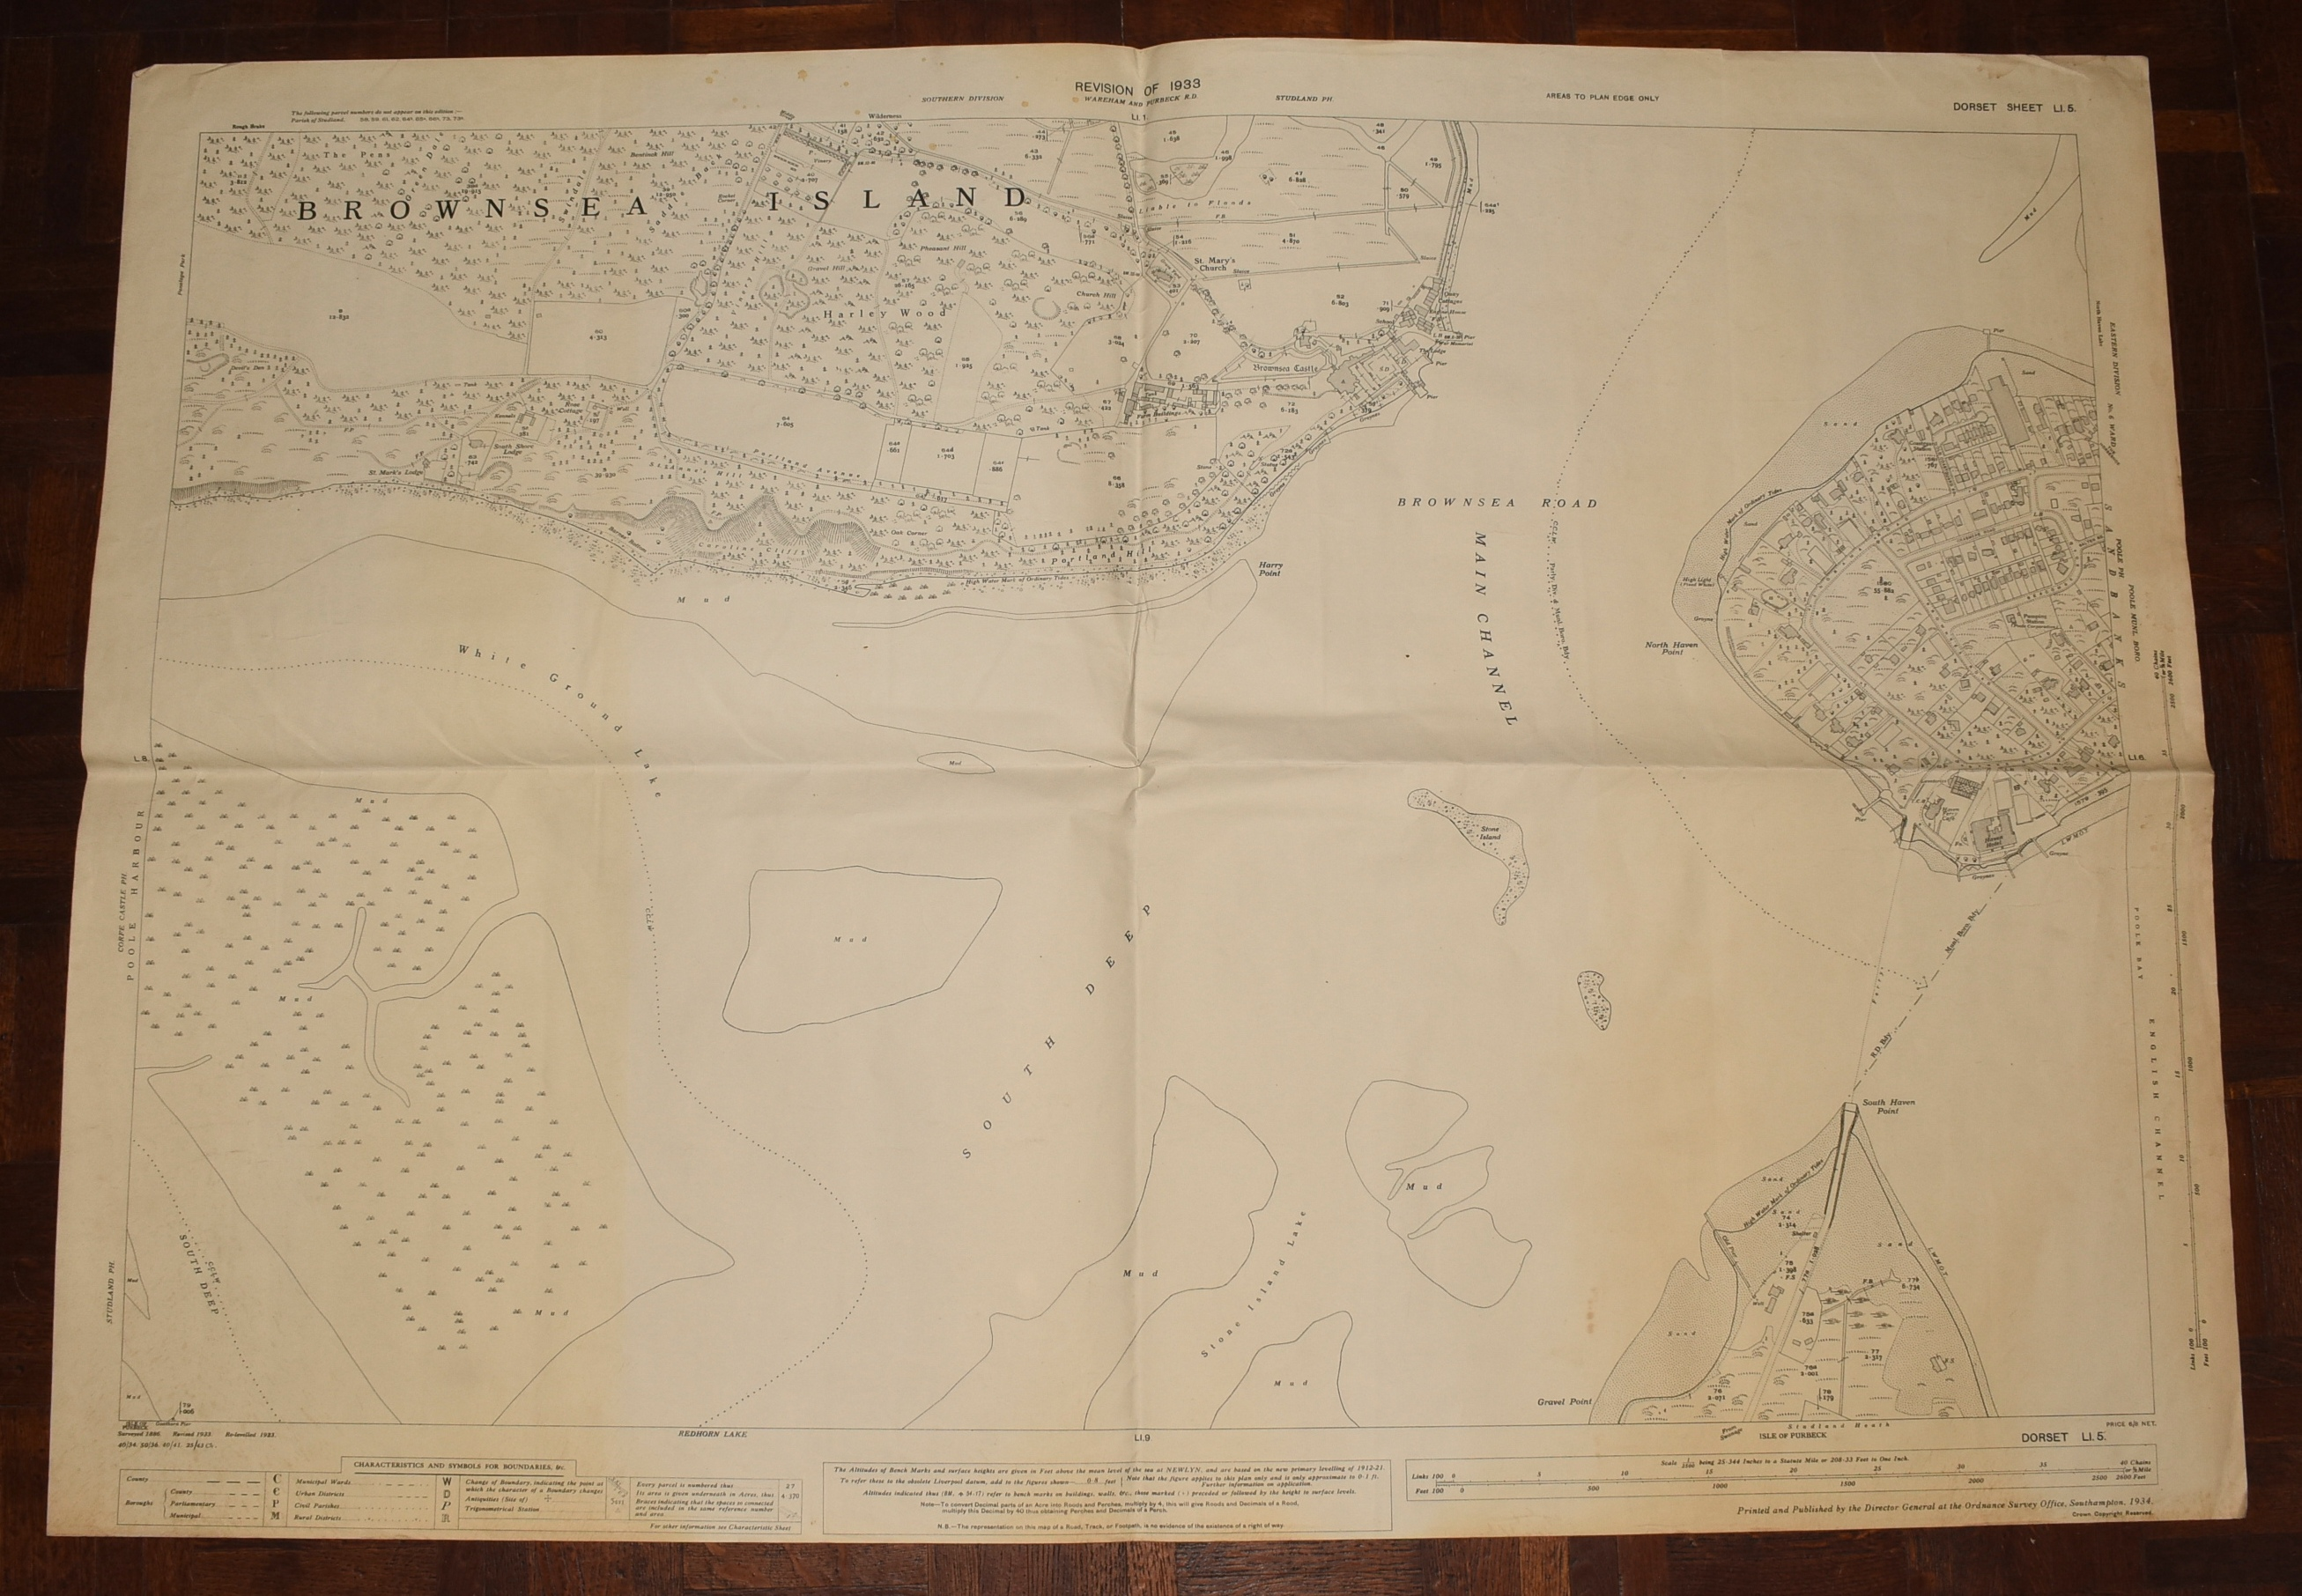 Image for LARGE Ordnance Survey MAP Sheet LI. 5 DORSET. Brownsea Island (Ferry Side) Sandbanks Scale 1:2500 or 25.344 inches to 1 mile.